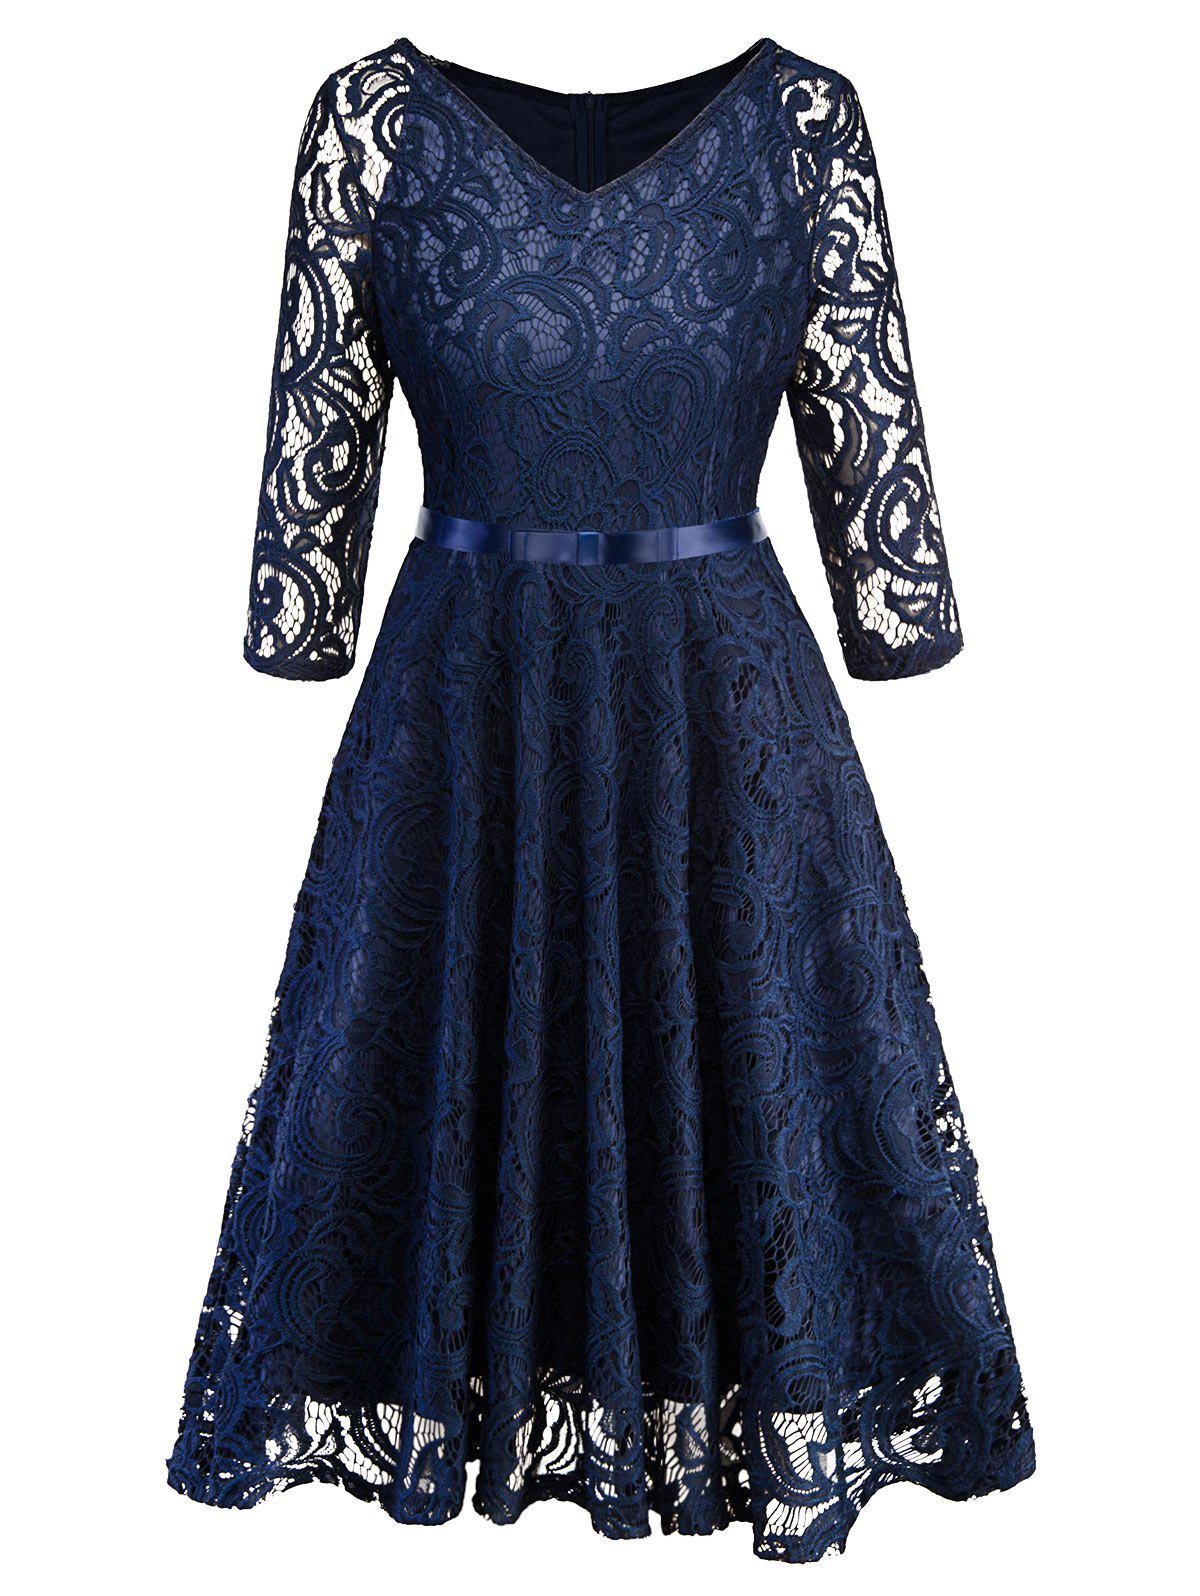 Hot Lace V Neck Vintage Knee Length Dress